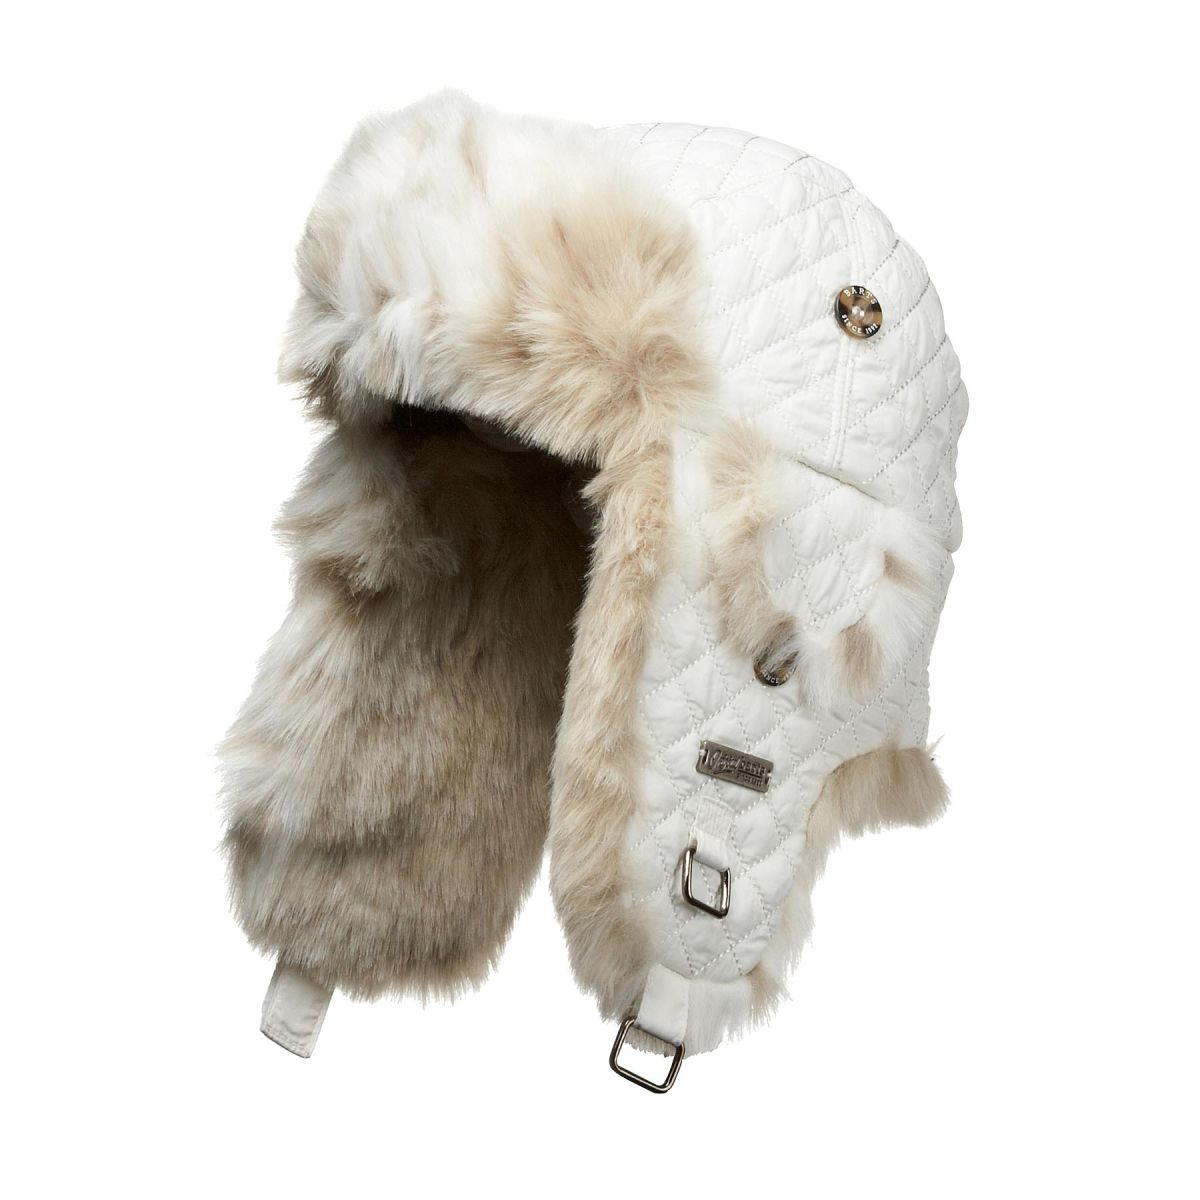 Details Studies show that % of the body's heat is lost through the head. Keep precious little heads safe and warm in these toasty sheepskin hats.